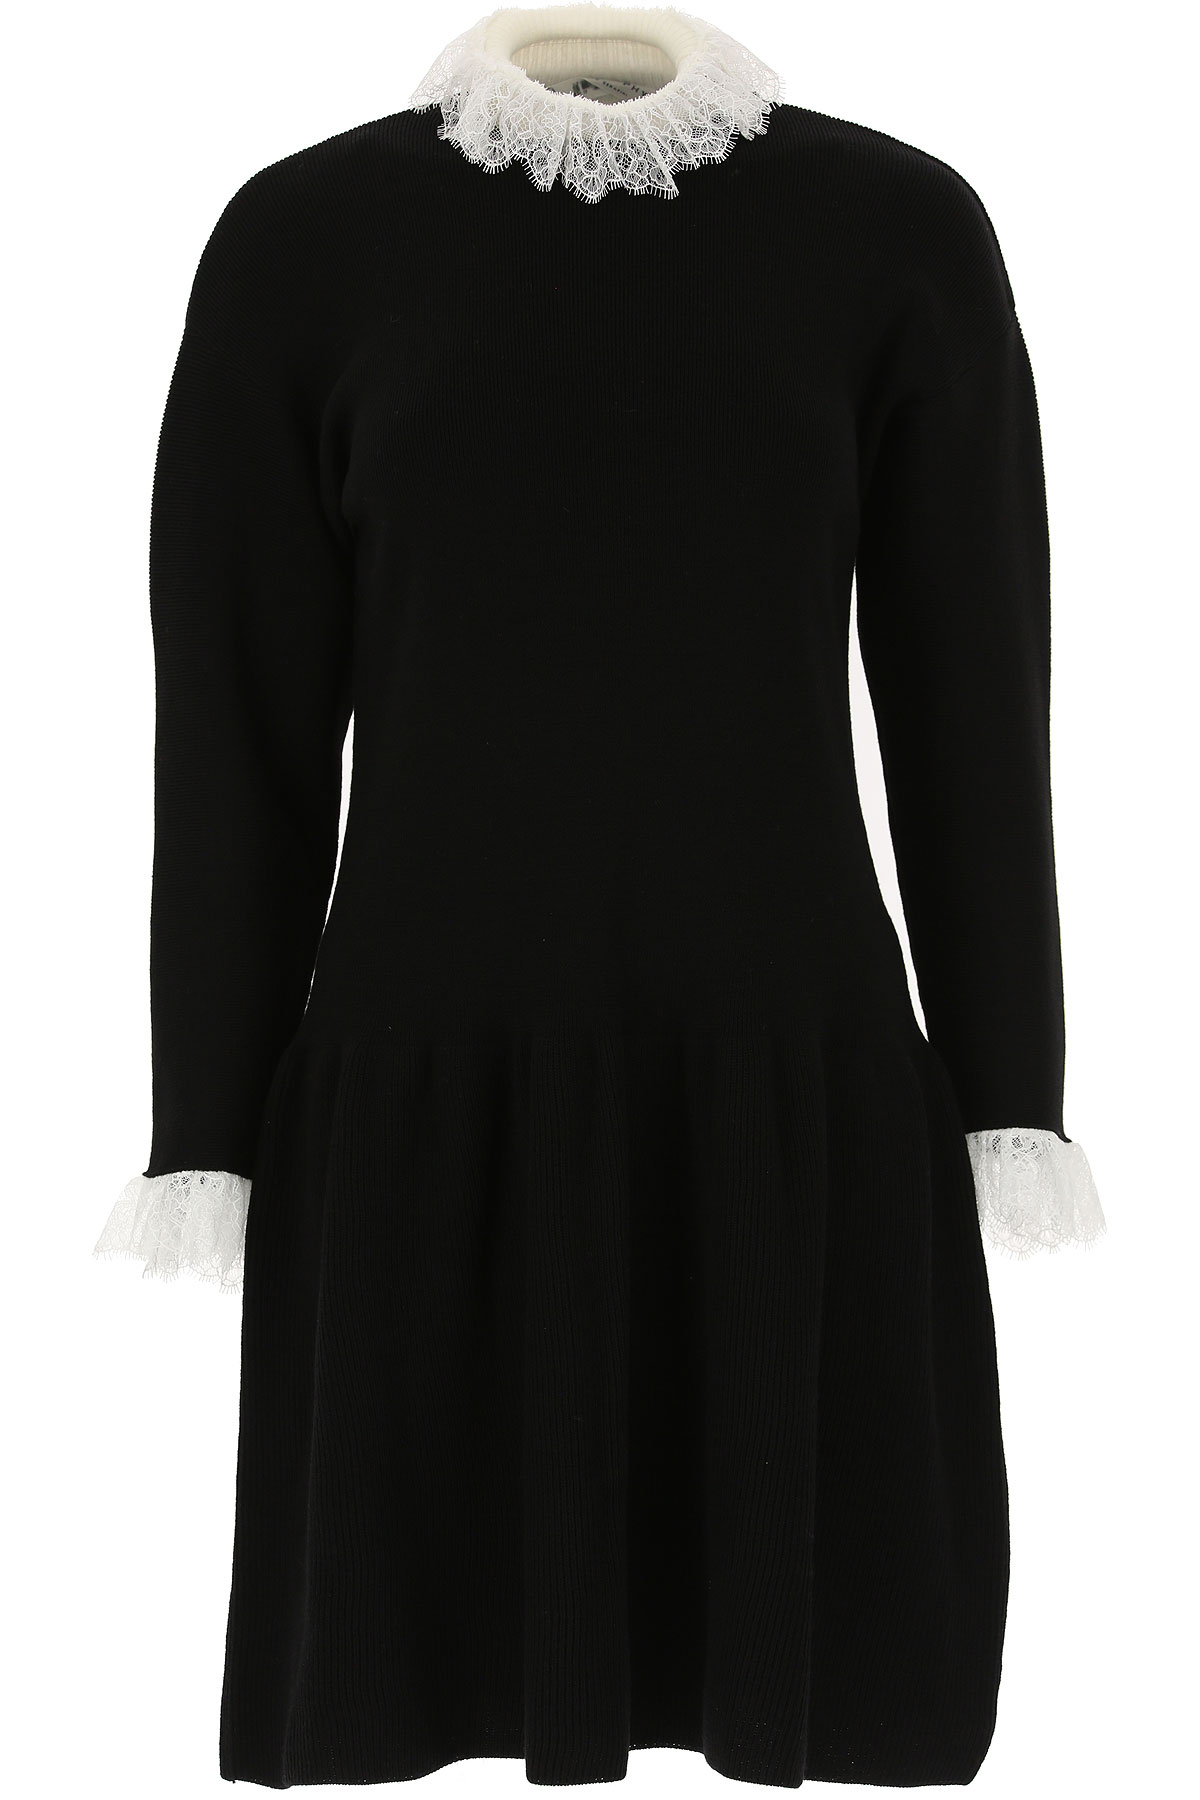 Image of Philosophy di Lorenzo Serafini Dress for Women, Evening Cocktail Party, Black, polyamide, 2017, 6 8